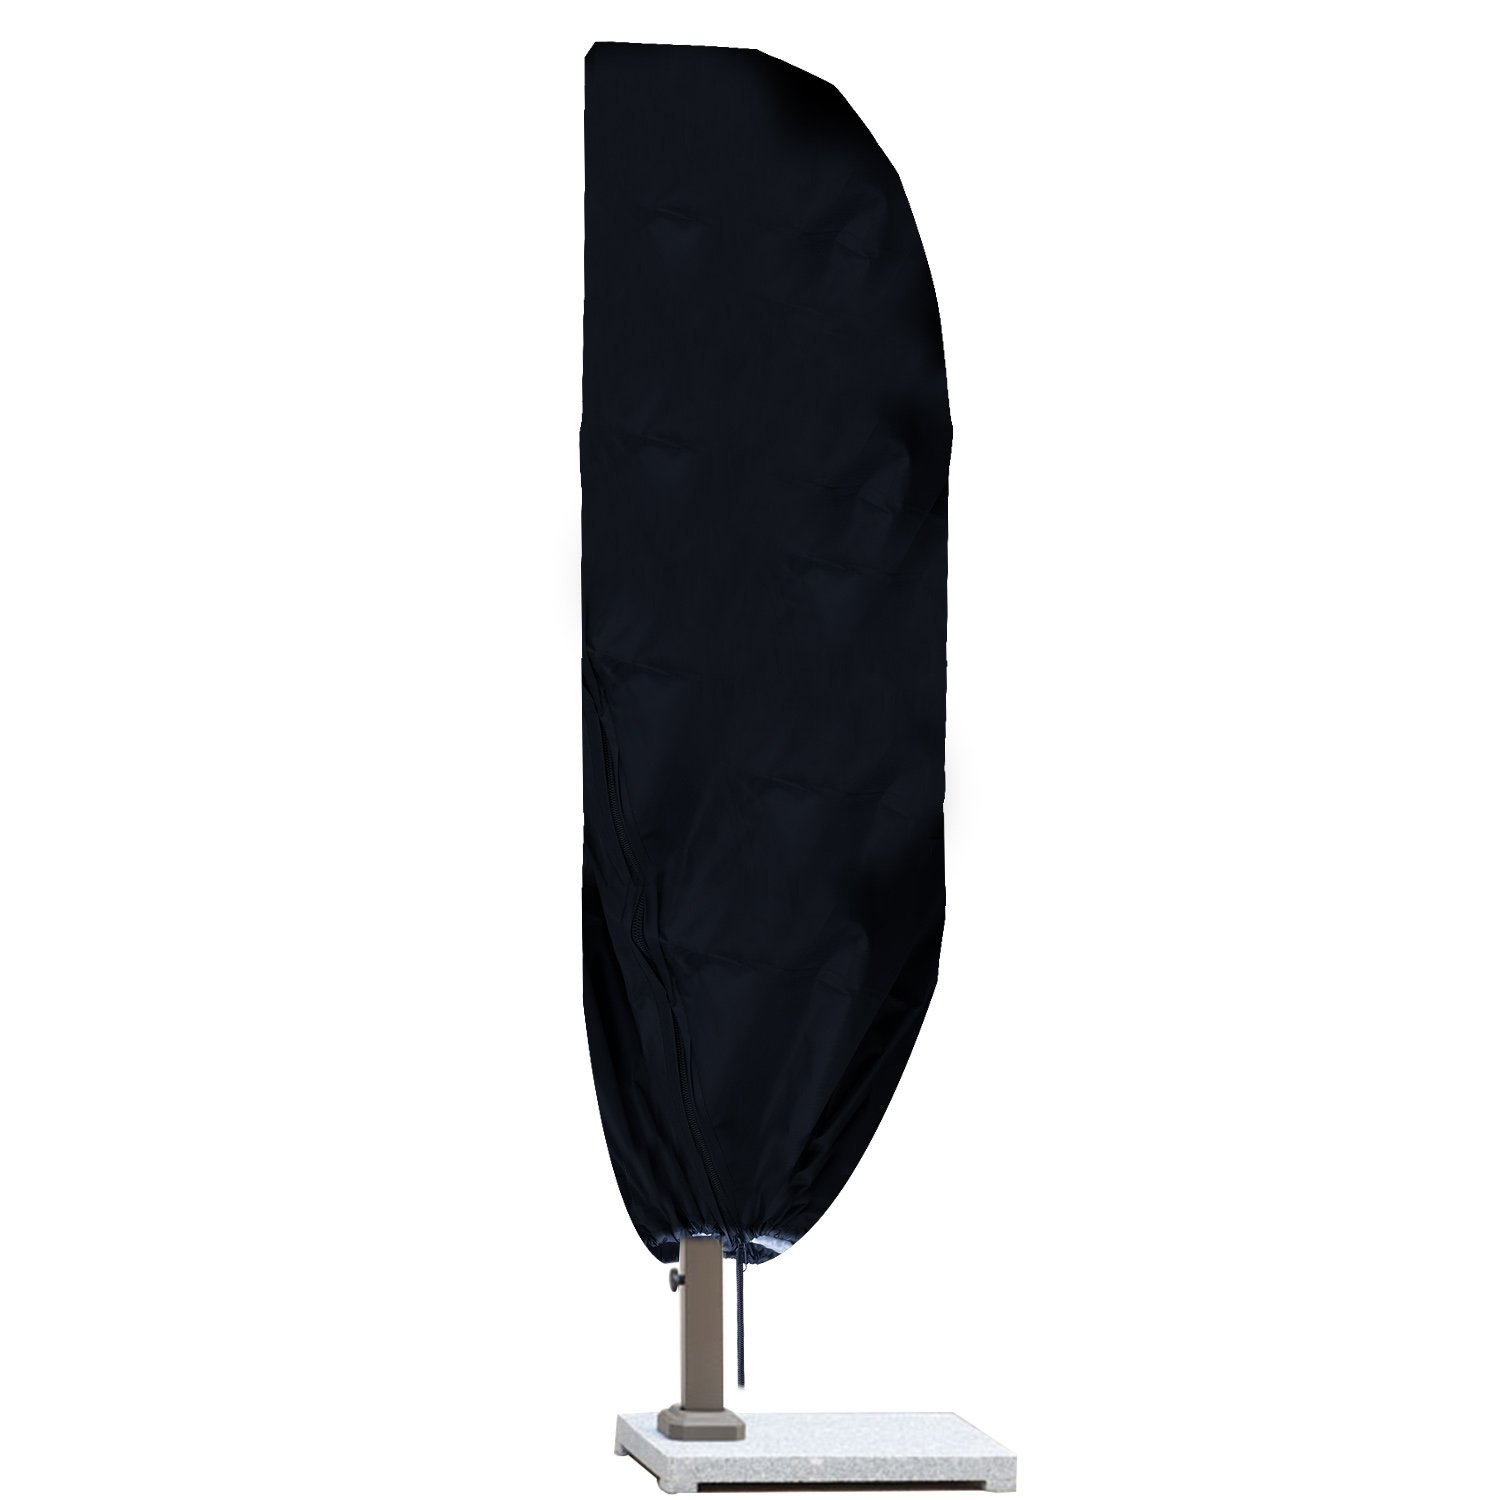 Garden Parasol Cover – Meersee Cantilever Banana Parasol Cover Extra Large 265CM Garden Heavy Duty Waterproof UV Protected Umbrella Protector with Zip, Black